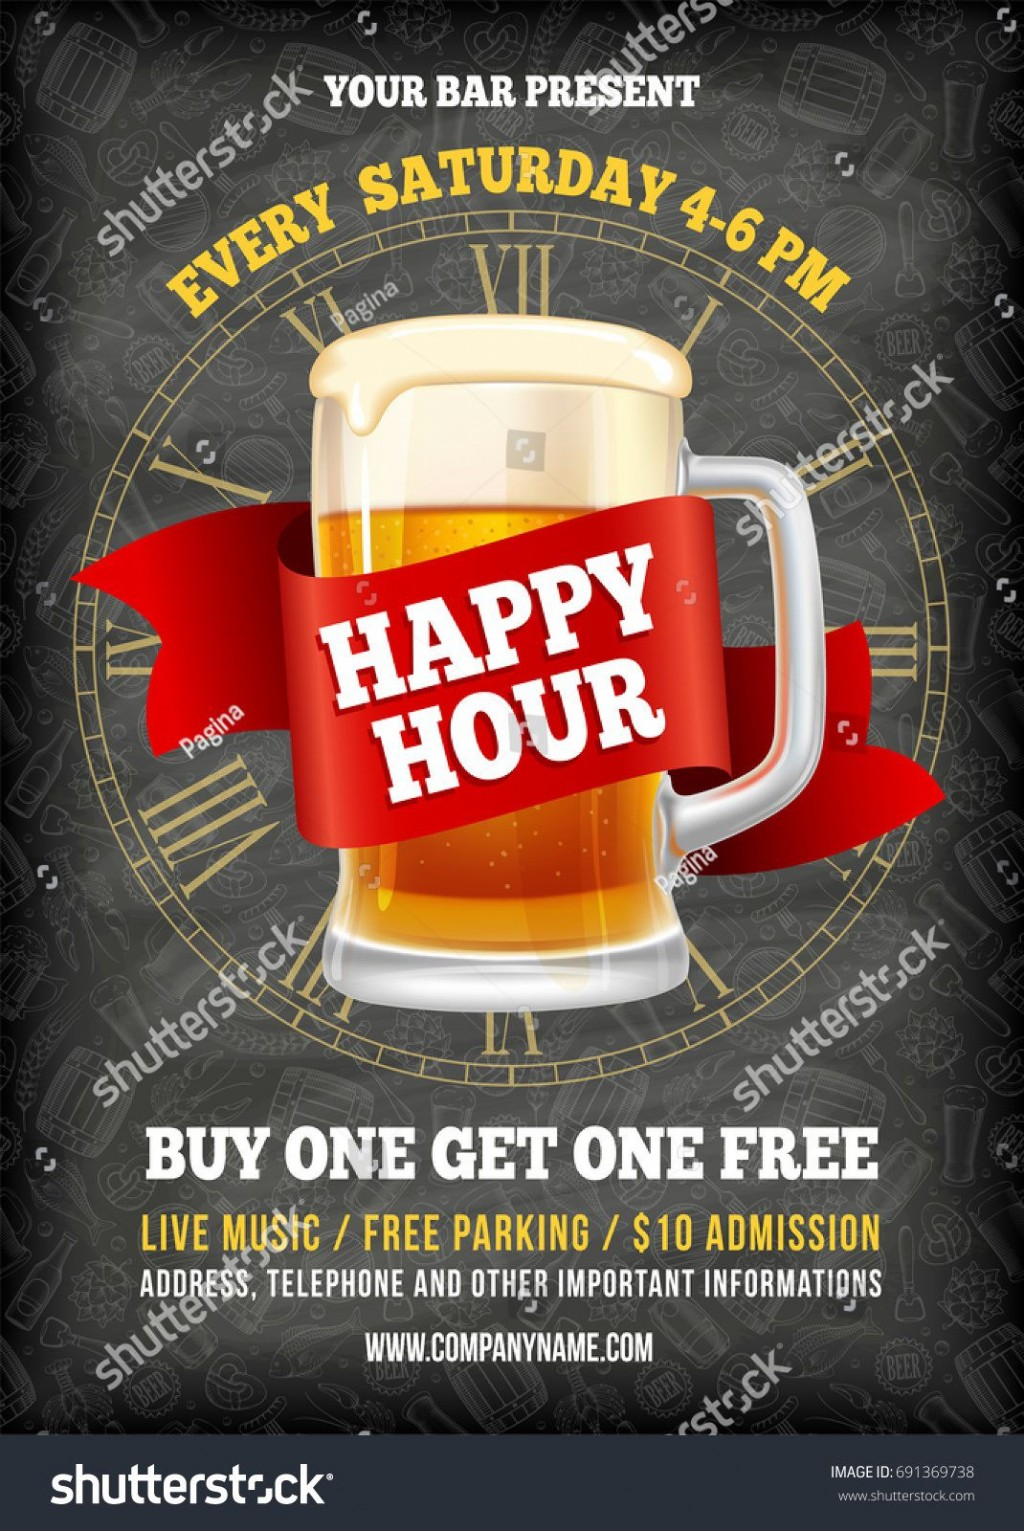 008 Surprising Happy Hour Invitation Template Image  Templates Free Word FarewellLarge